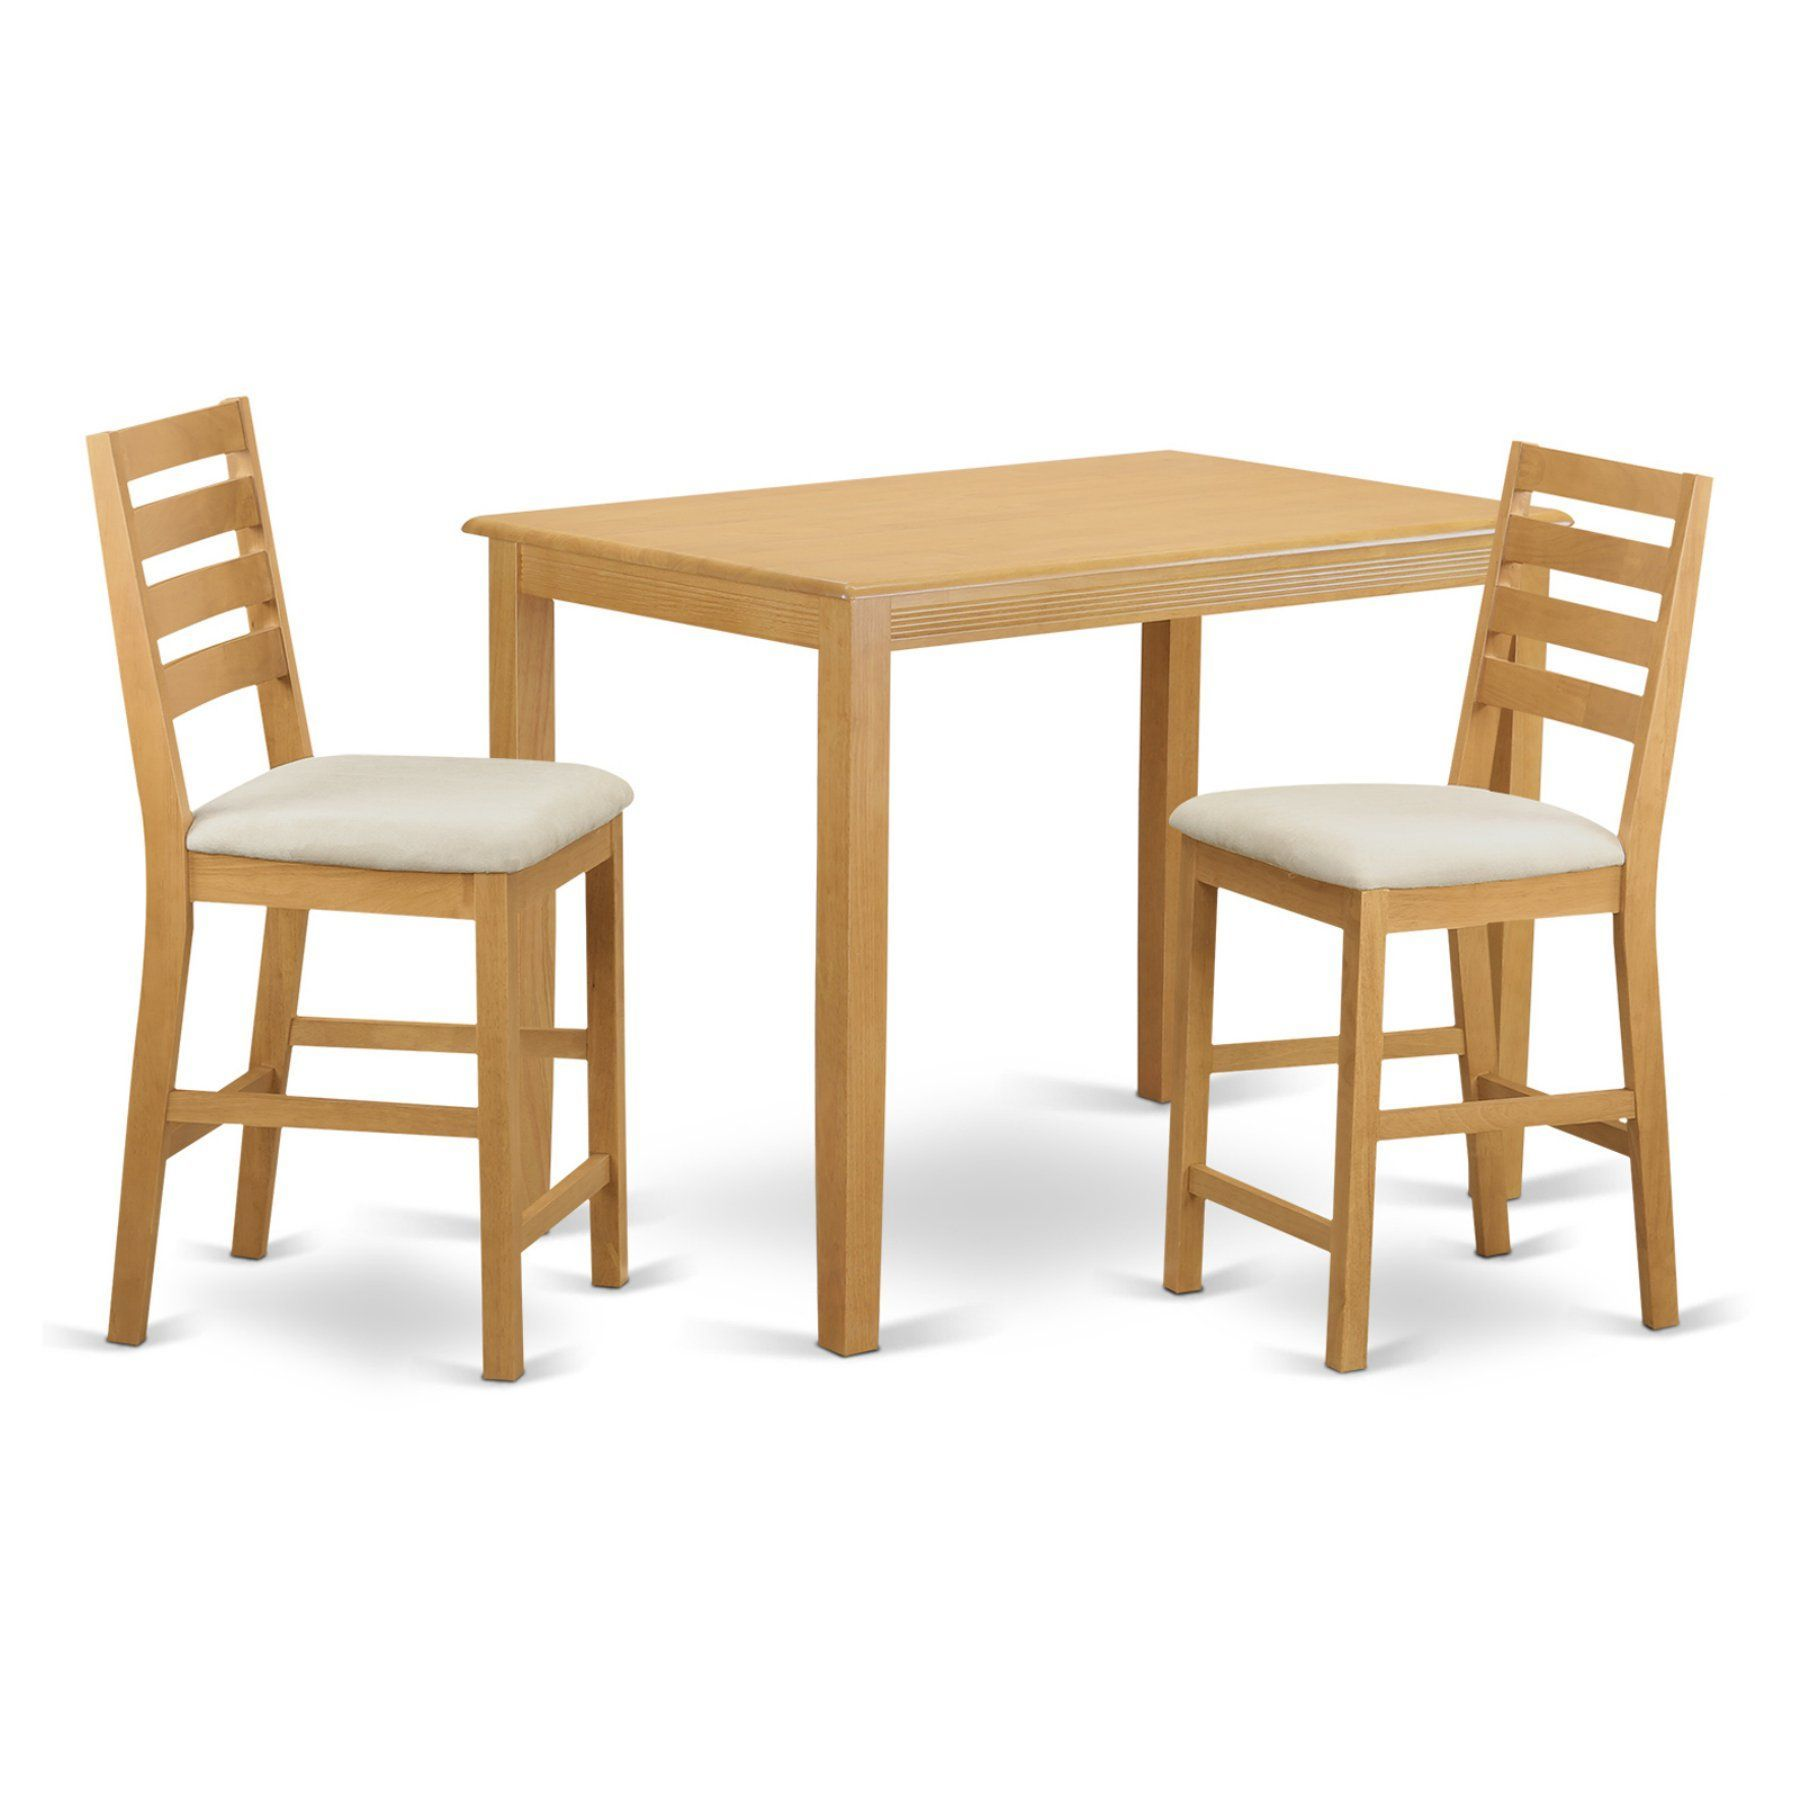 east west furniture yarmouth 3 piece high ladder dining table set